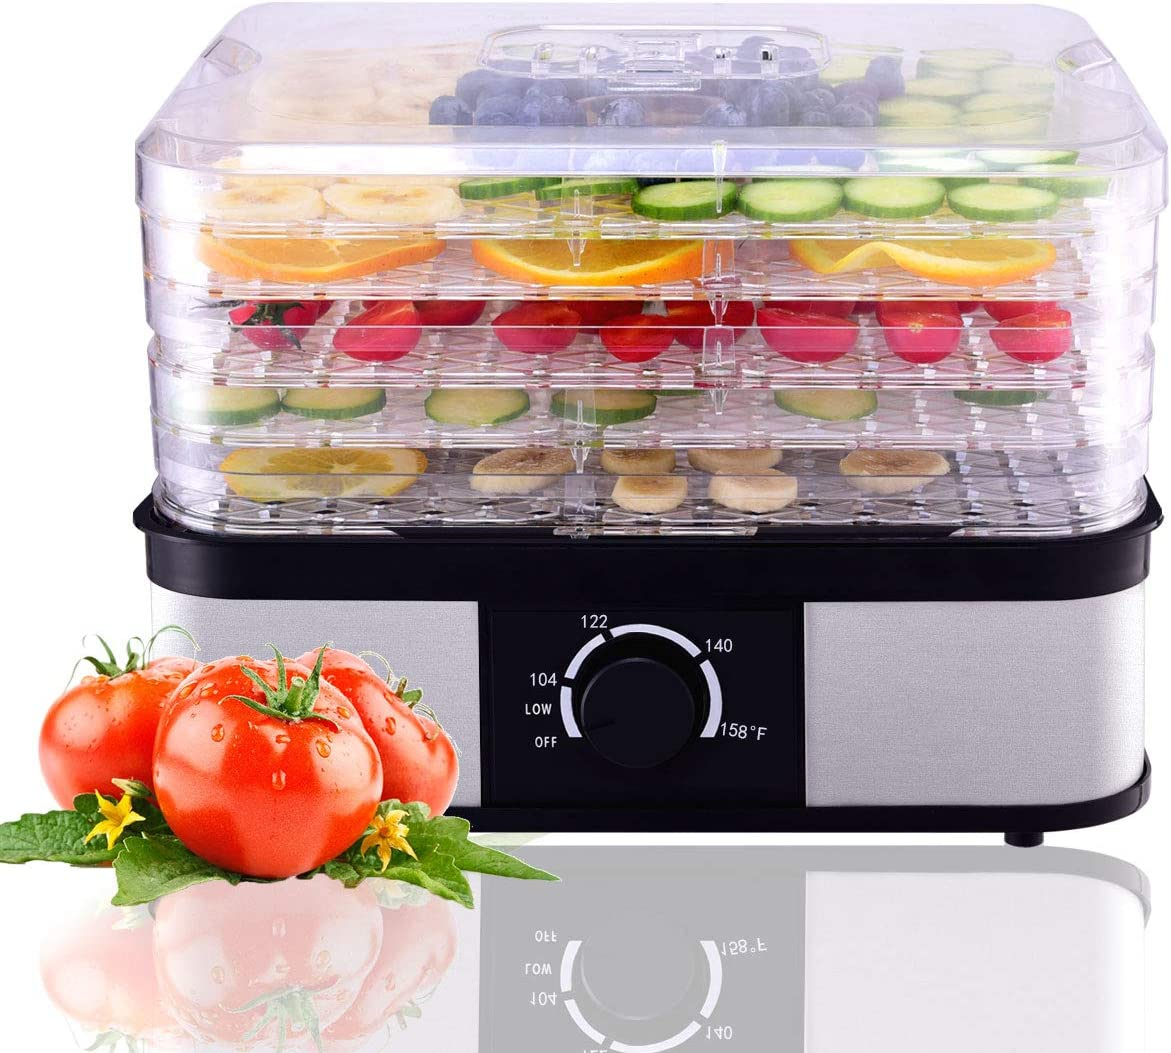 HAPPYGRILL Food Dehydrator, Best Electric 5-Tier Home Food Meat Beef Jerky Fruit Vegetable Dehydrator Dryer Preserver, Professional 360 Degree Hot Air Circulation System, Easy to Clean